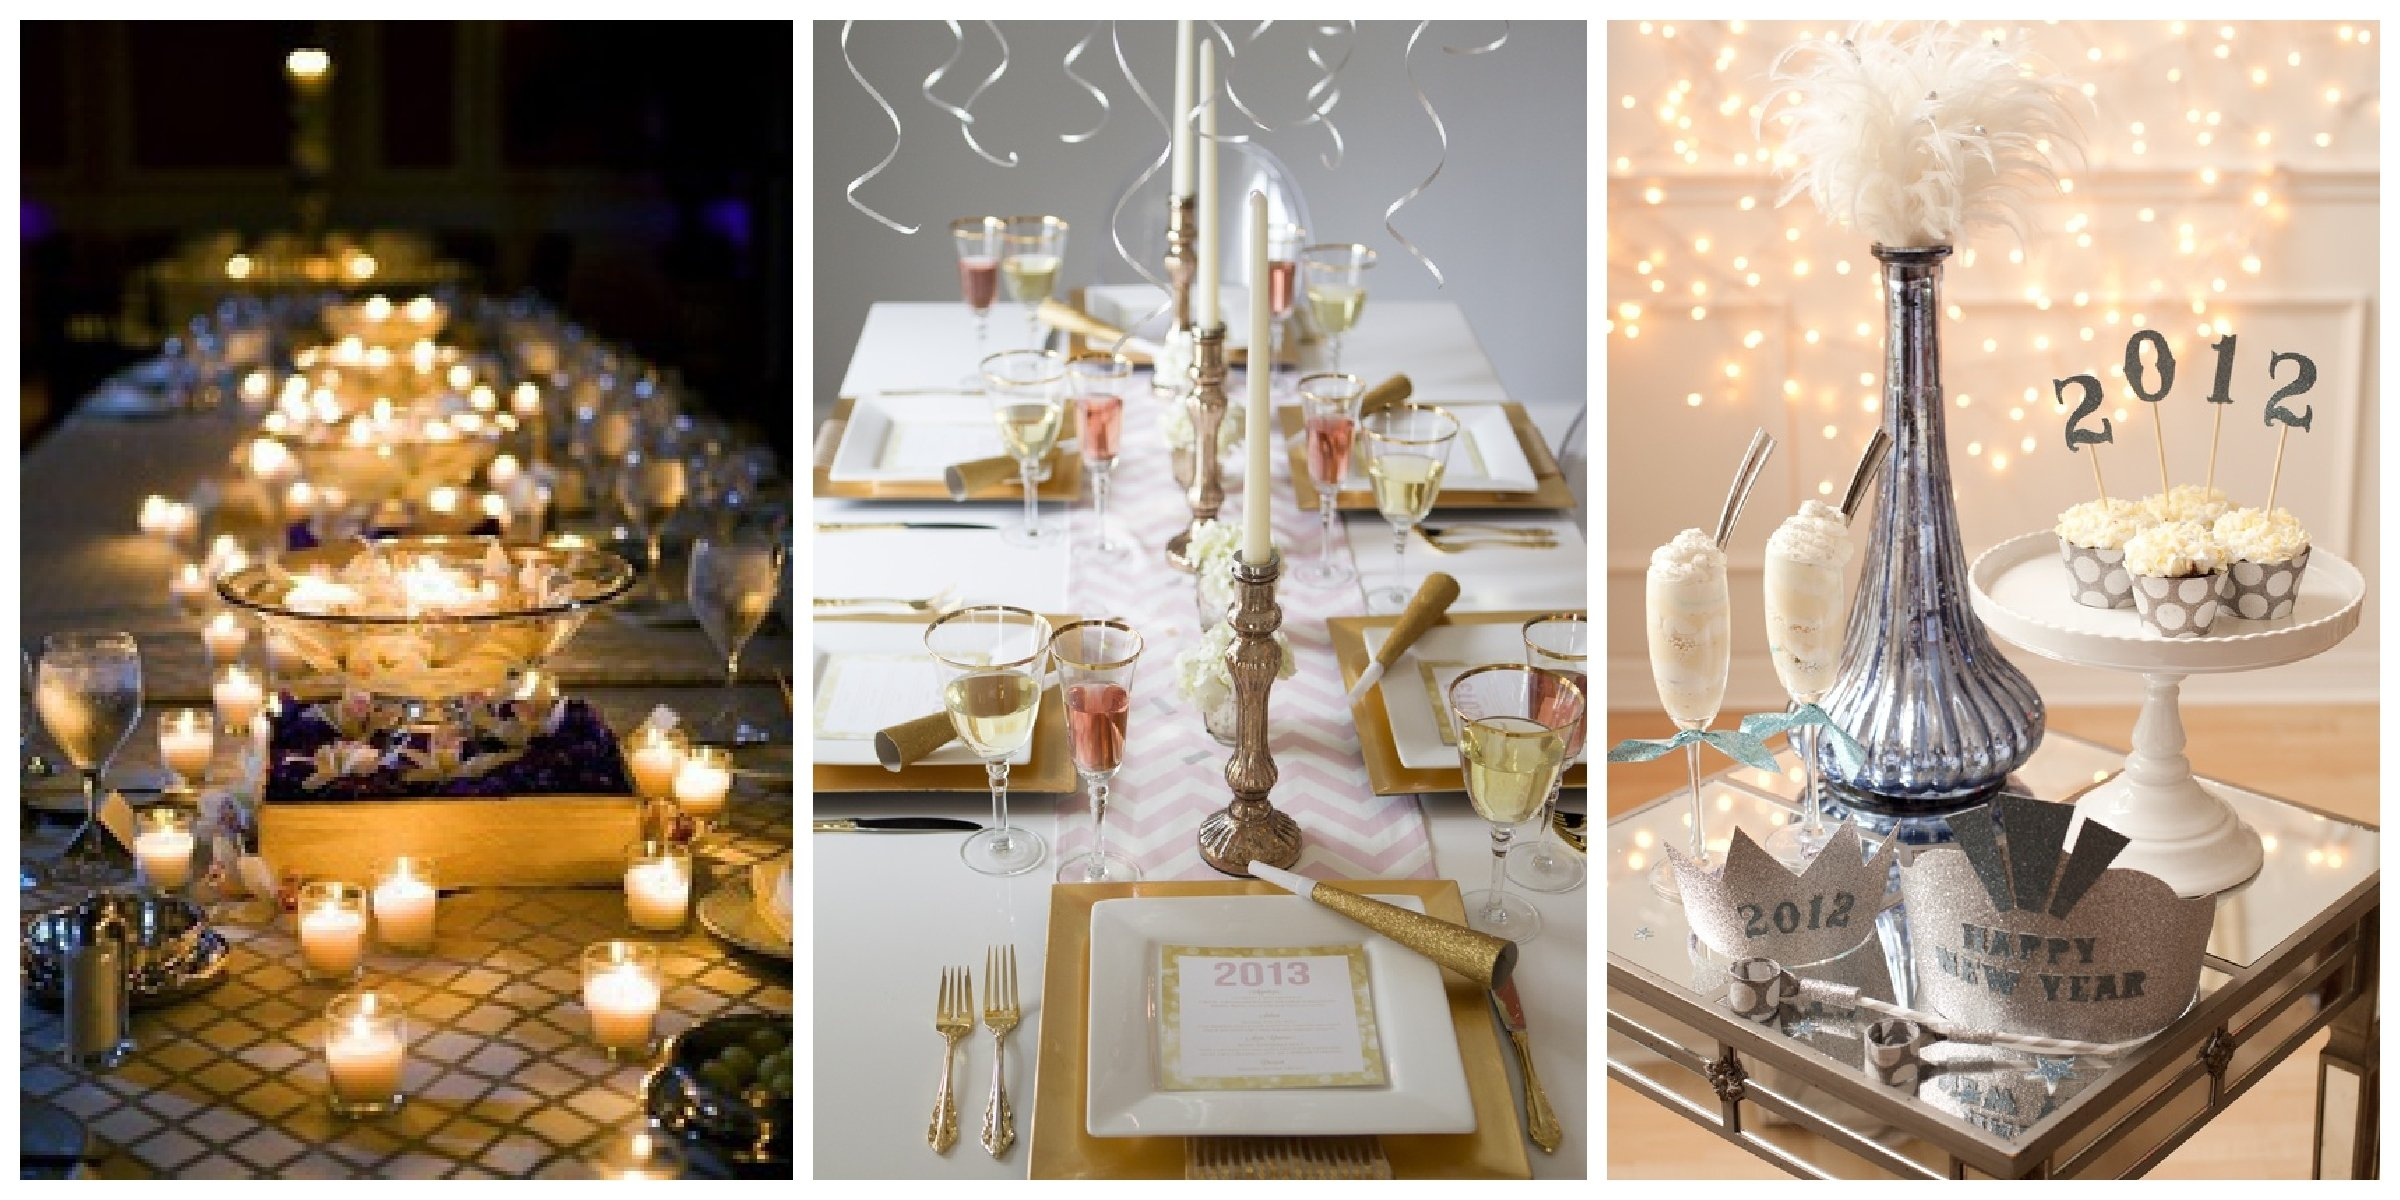 10 Pretty New Years Eve Decorations Ideas glamorous decorating ideas new years eve gallery simple design 2021